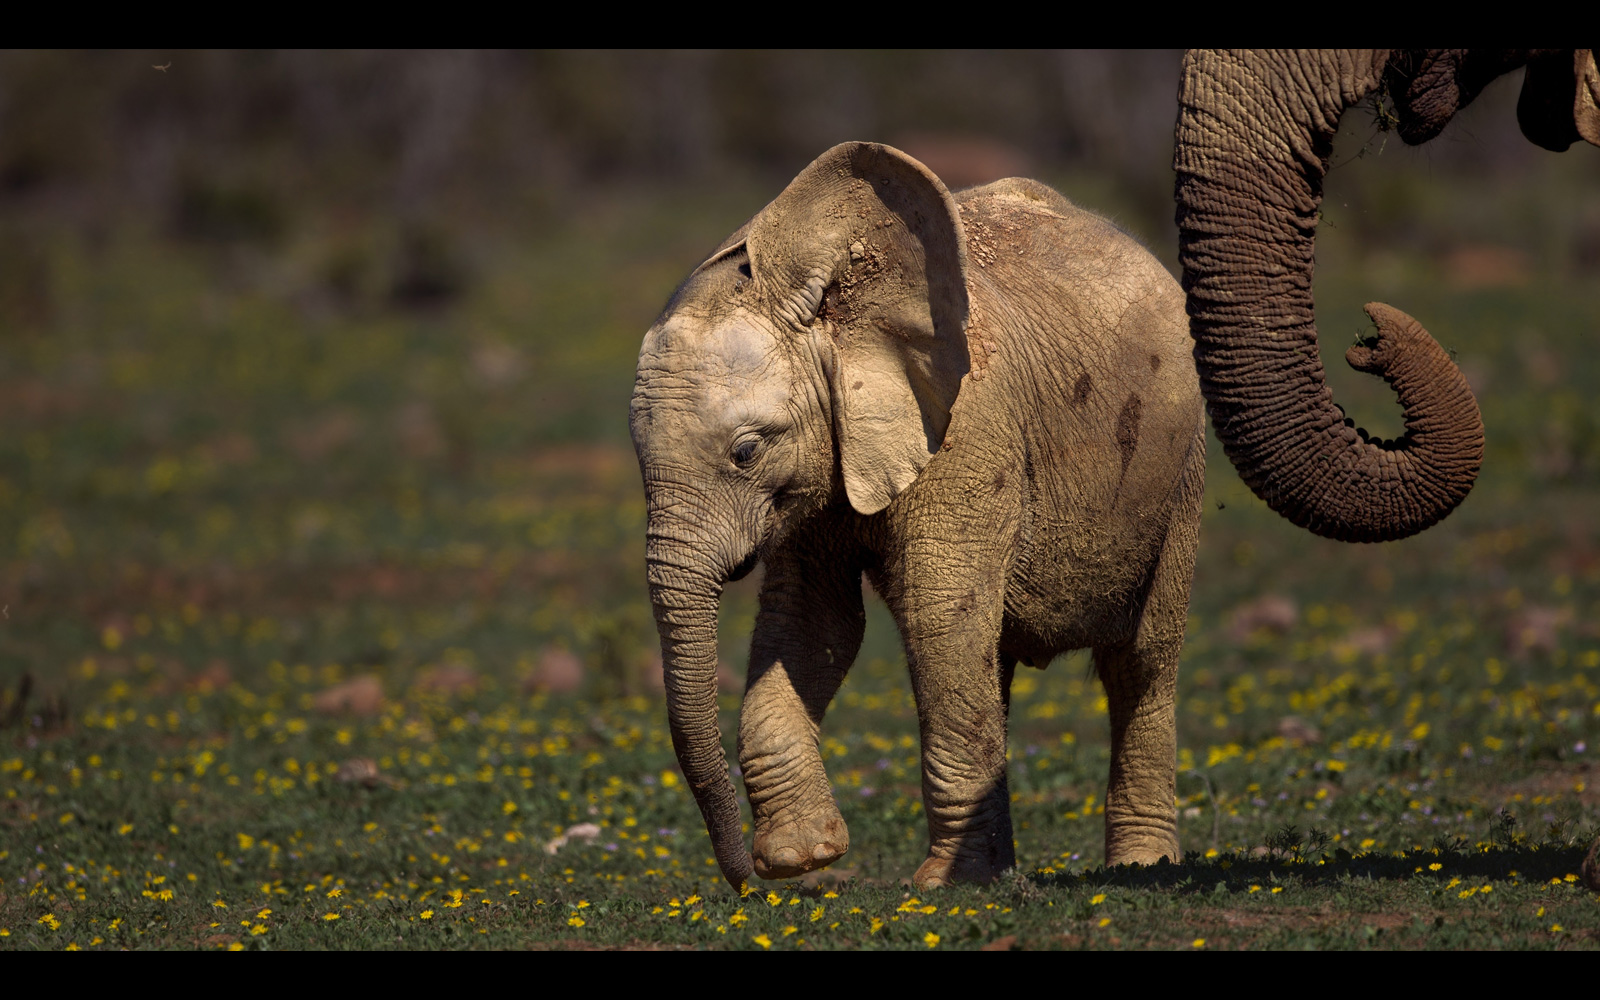 A baby elephant with its mother in Addo Elephant National Park, South Africa © Fanie Heymans